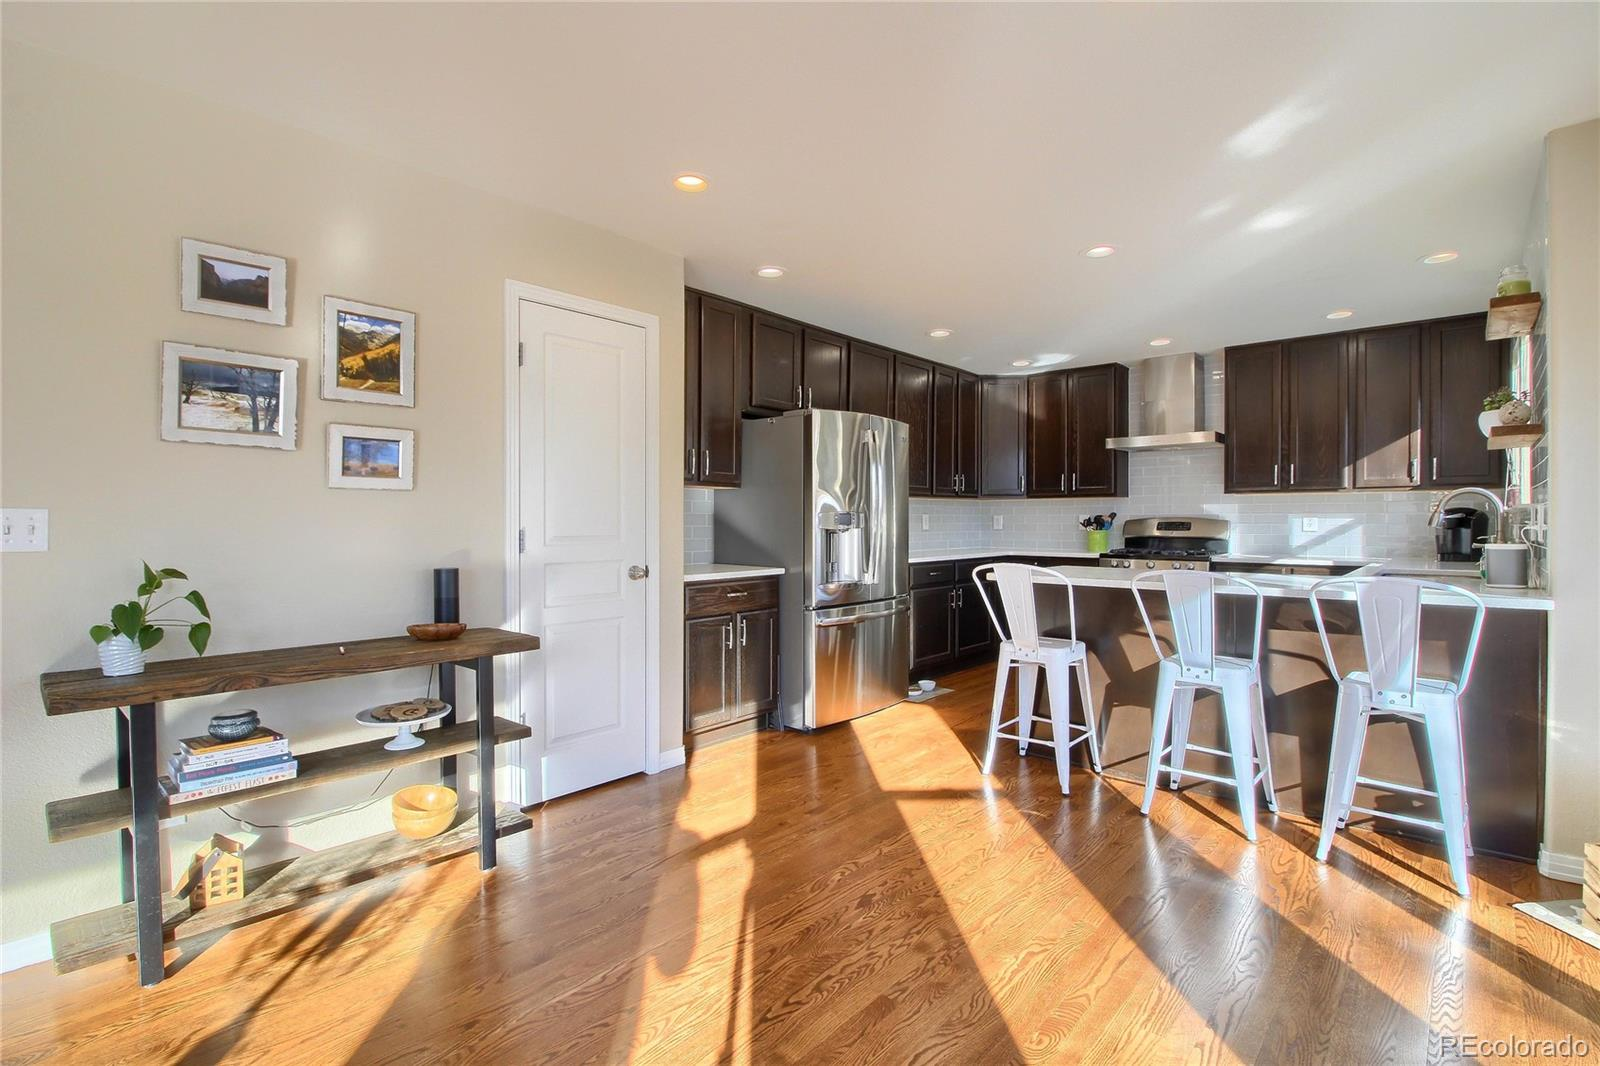 MLS# 3161208 - 7 - 1068 W 135th Court, Westminster, CO 80234